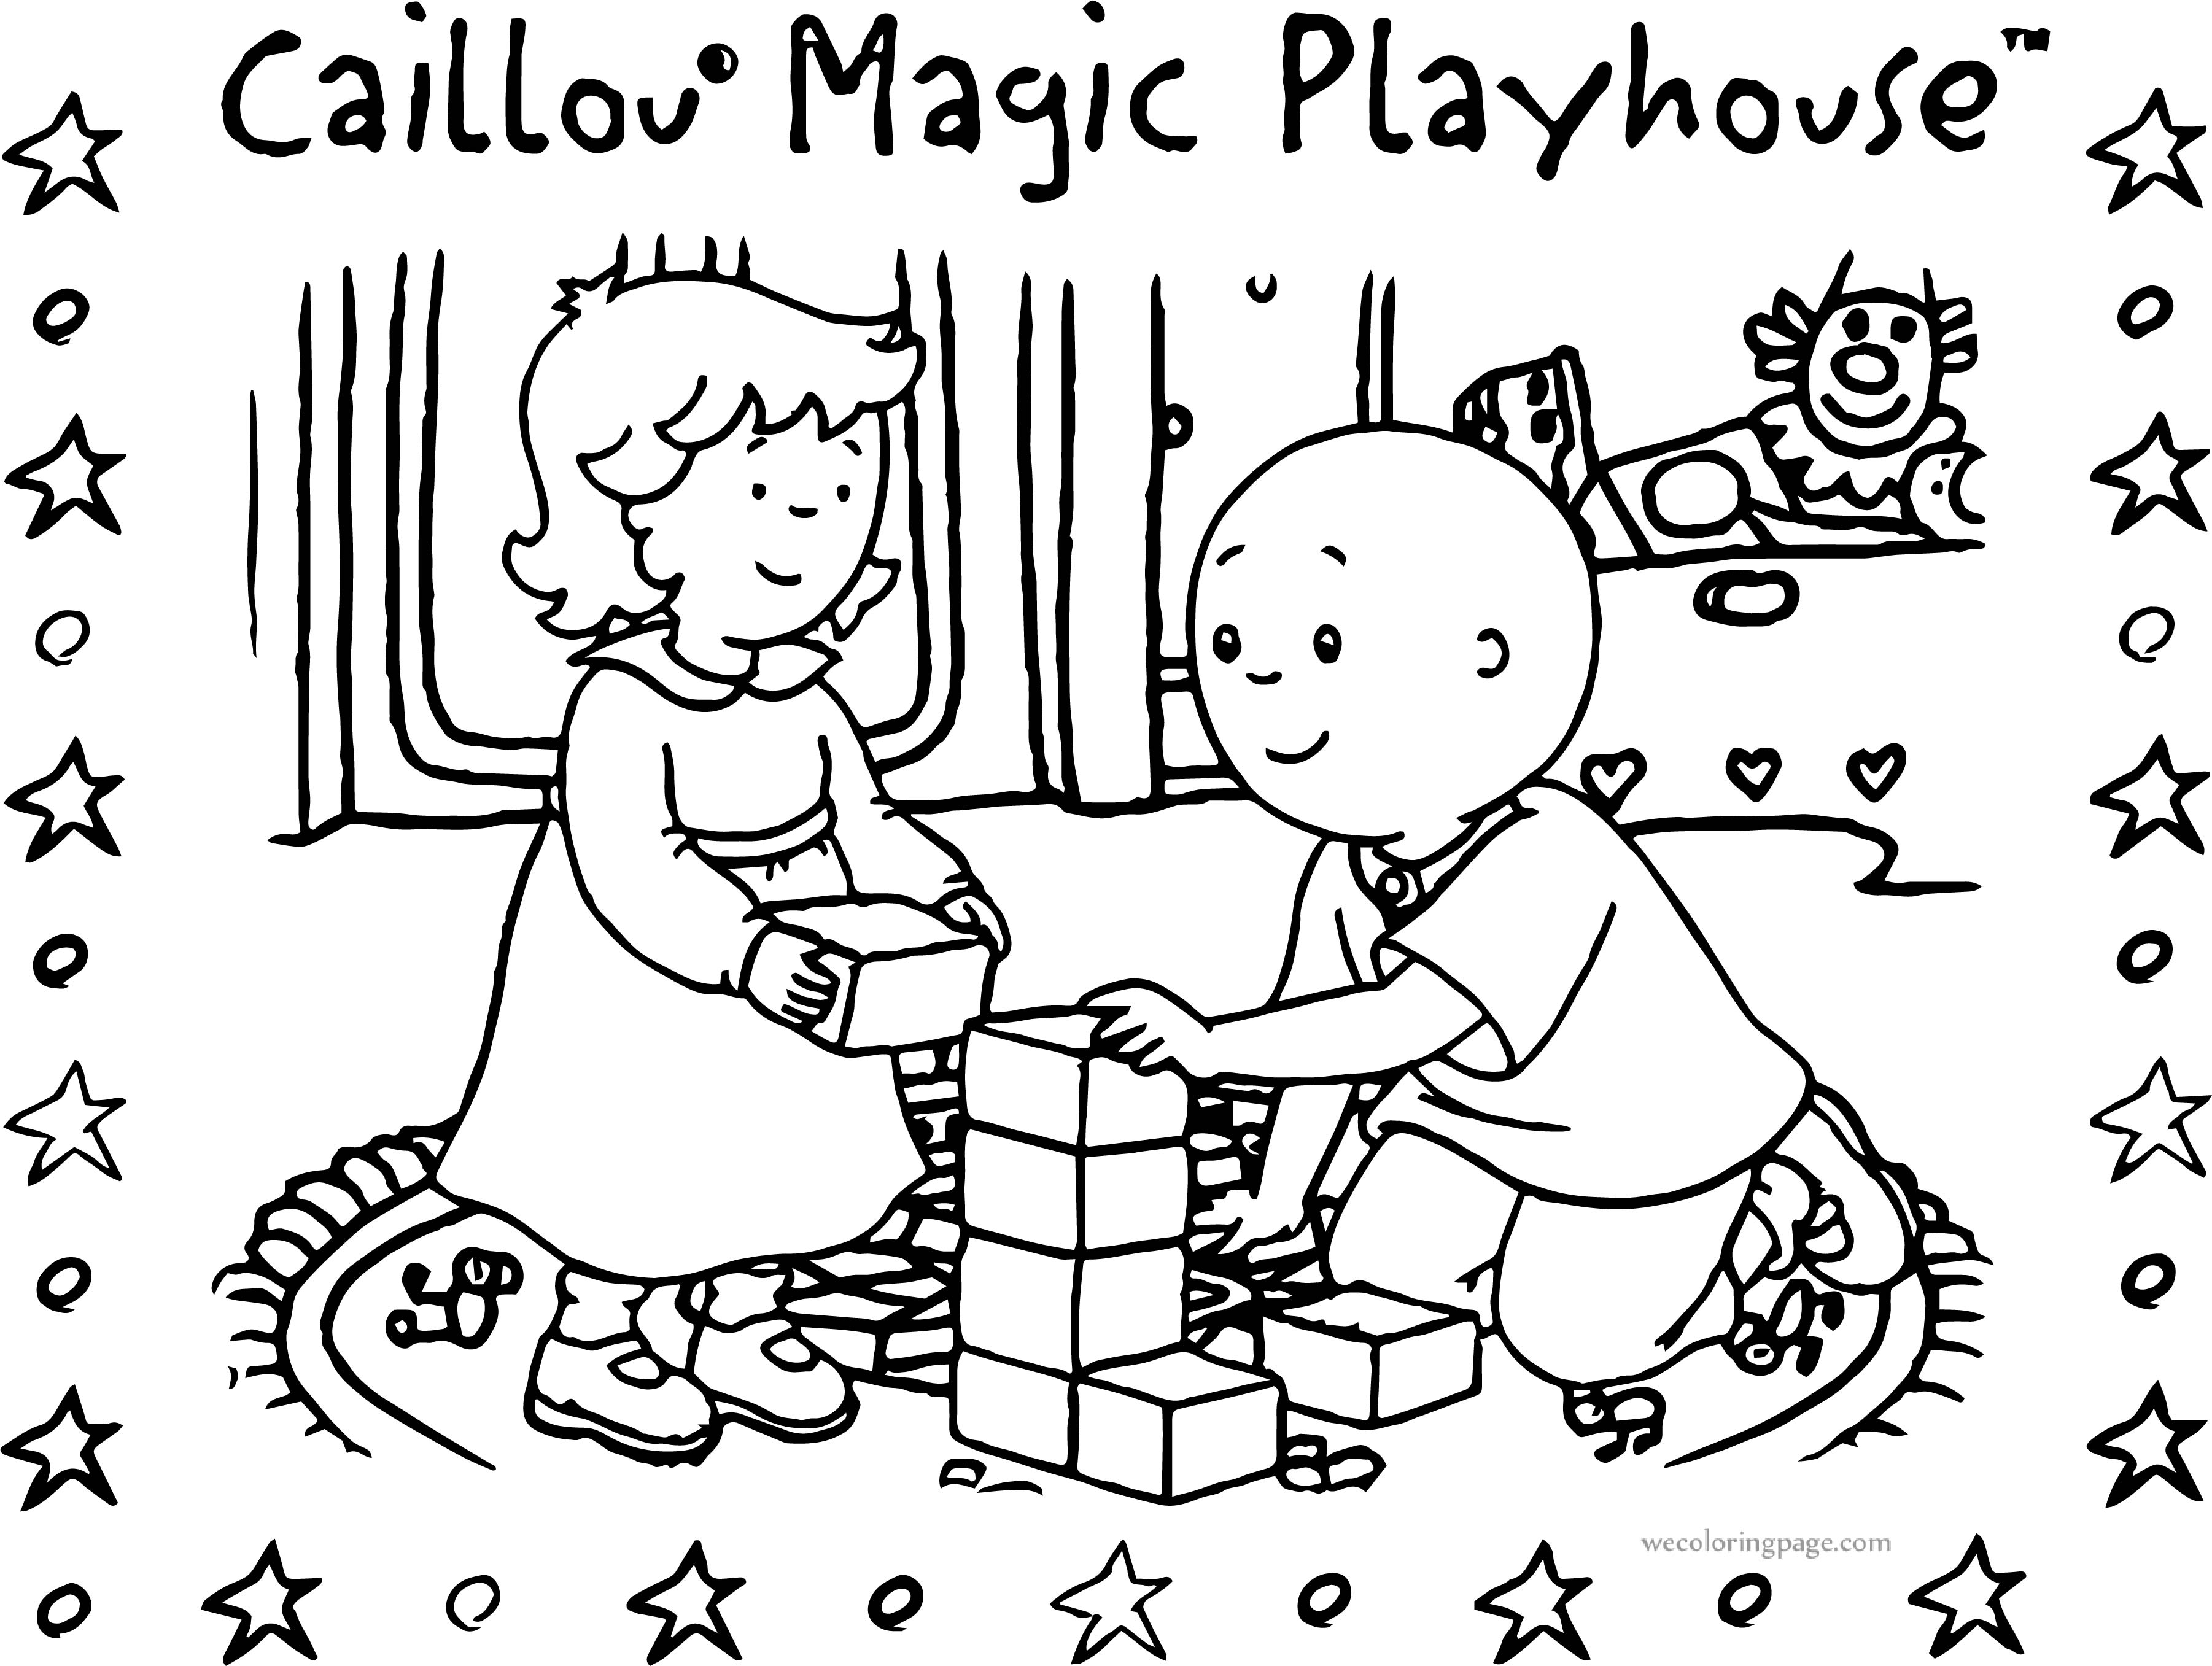 Caillou Magic Playhouse Coloring Page